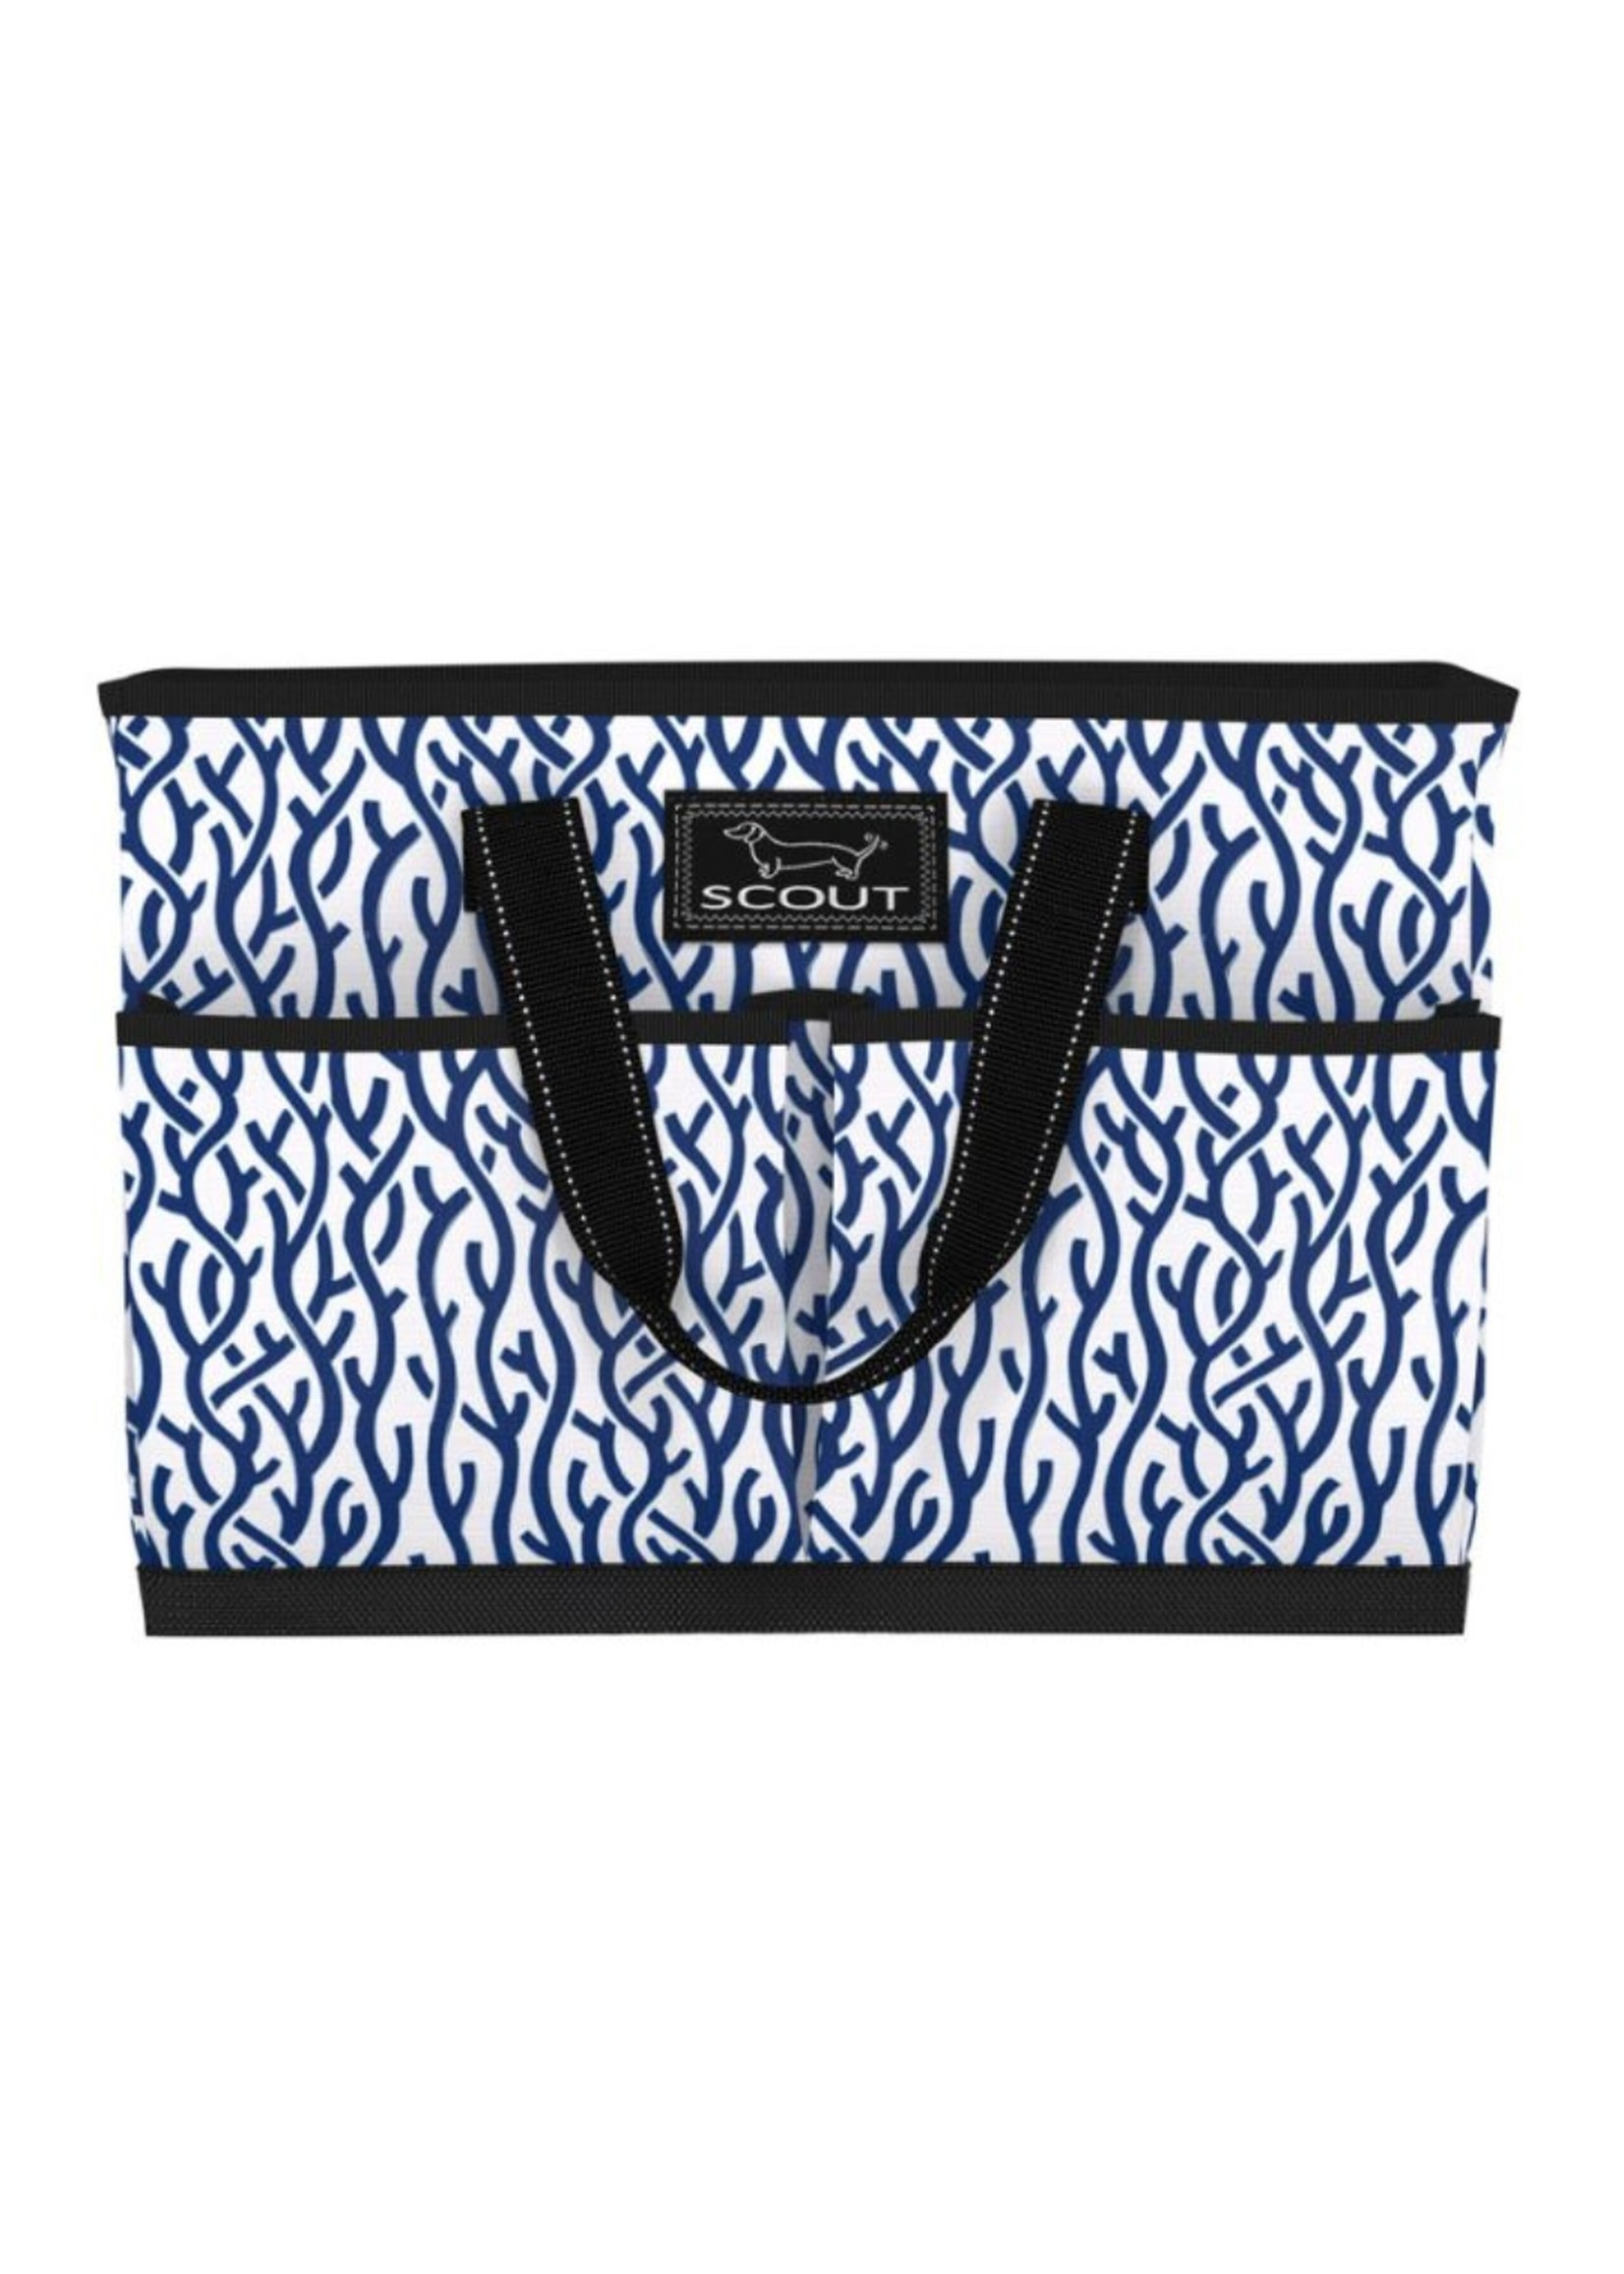 scout by bungalow Scout The BJ Bag Cays of Our Lives